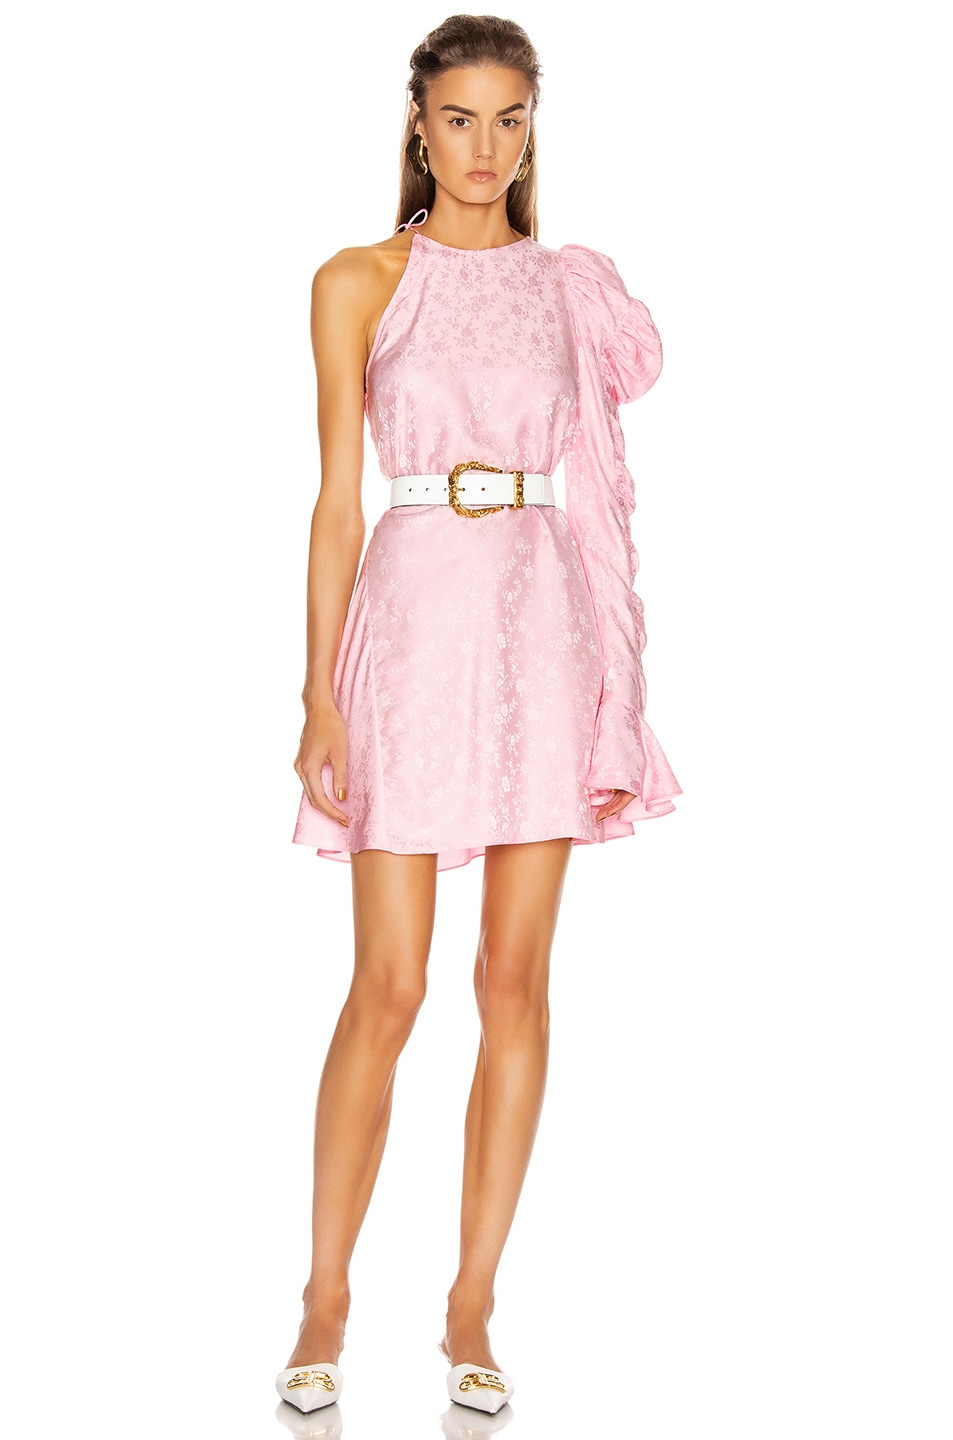 Image 1 of Les Reveries x FWRD Asymmetrical Puff Sleeve Dress in Rose Pink